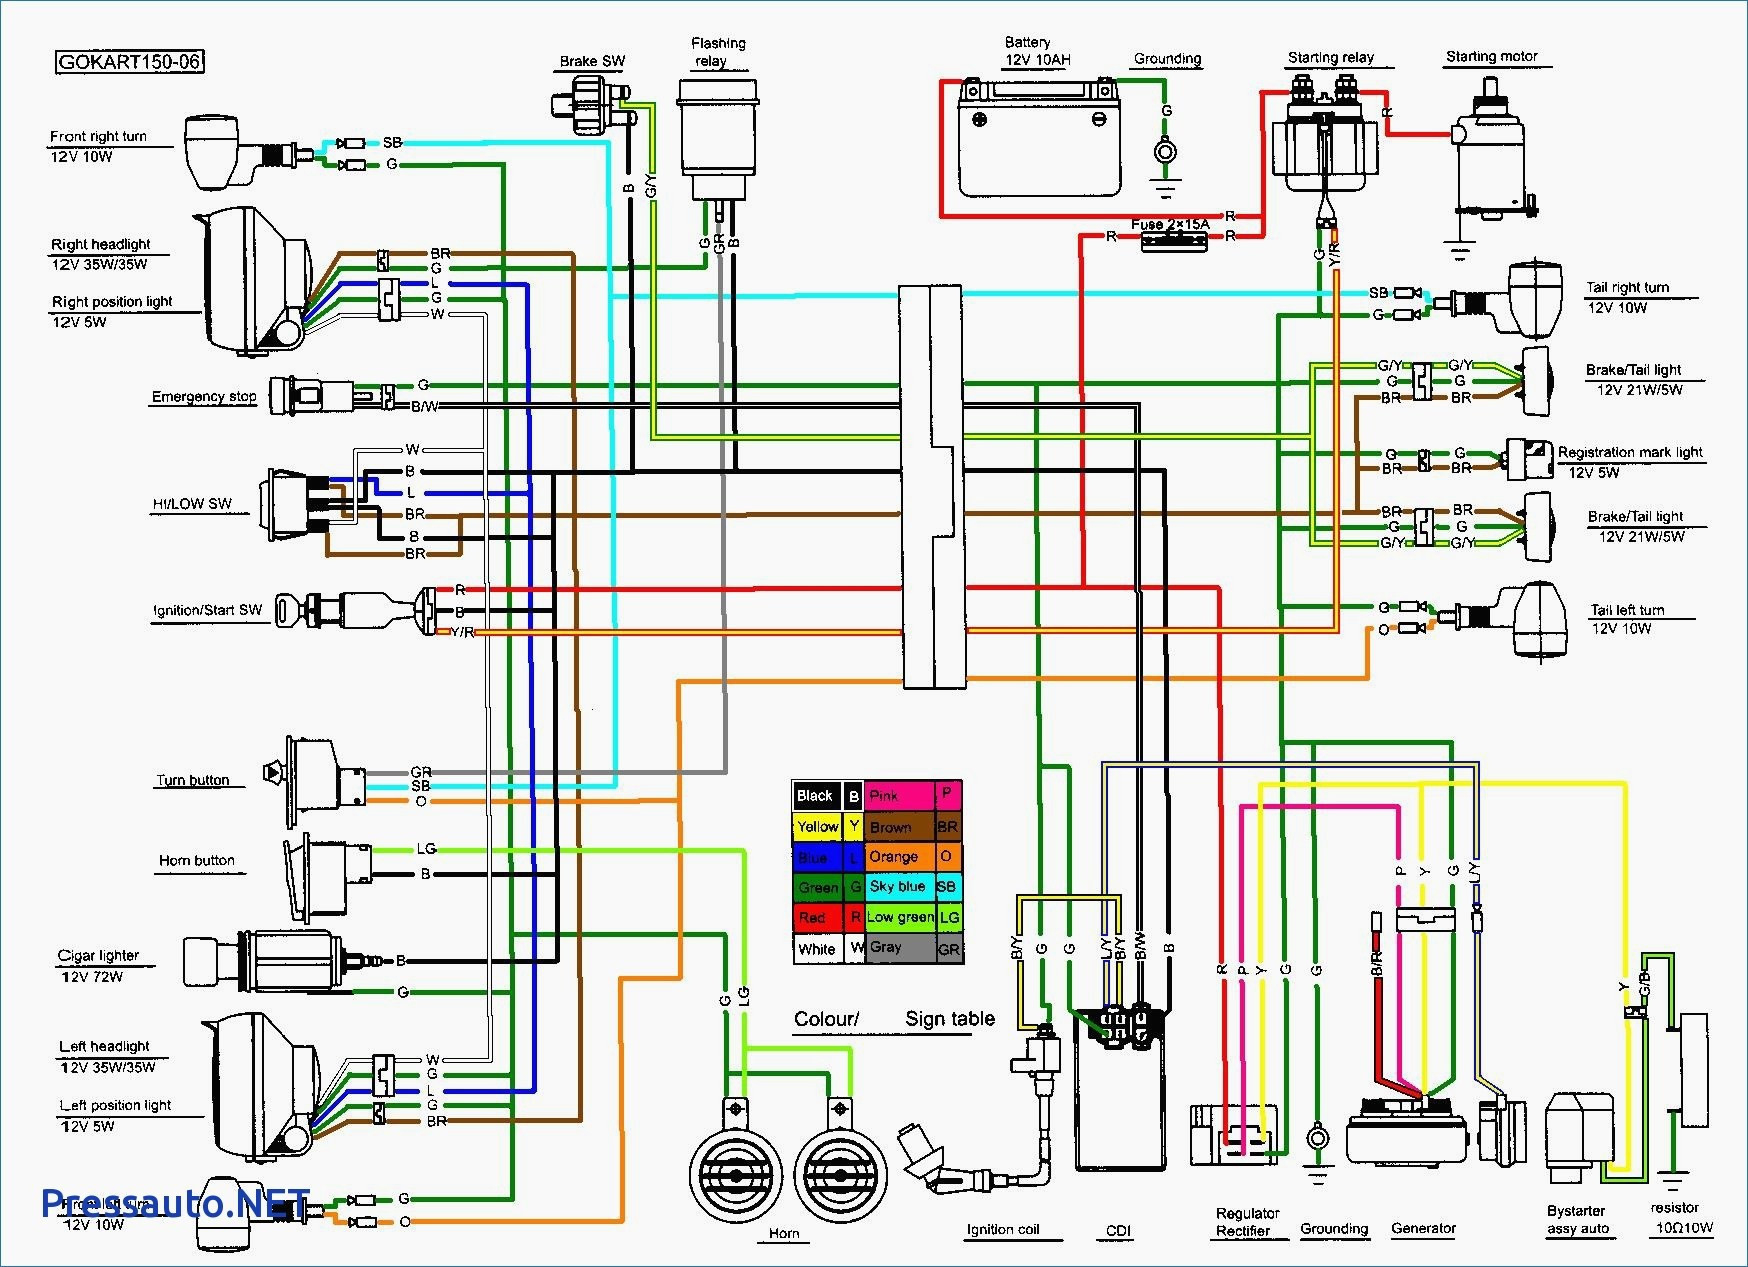 Diagram 8 Pin Cdi Wiring Diagram Full Version Hd Quality Wiring Diagram Iamwiring Italiafunerali It